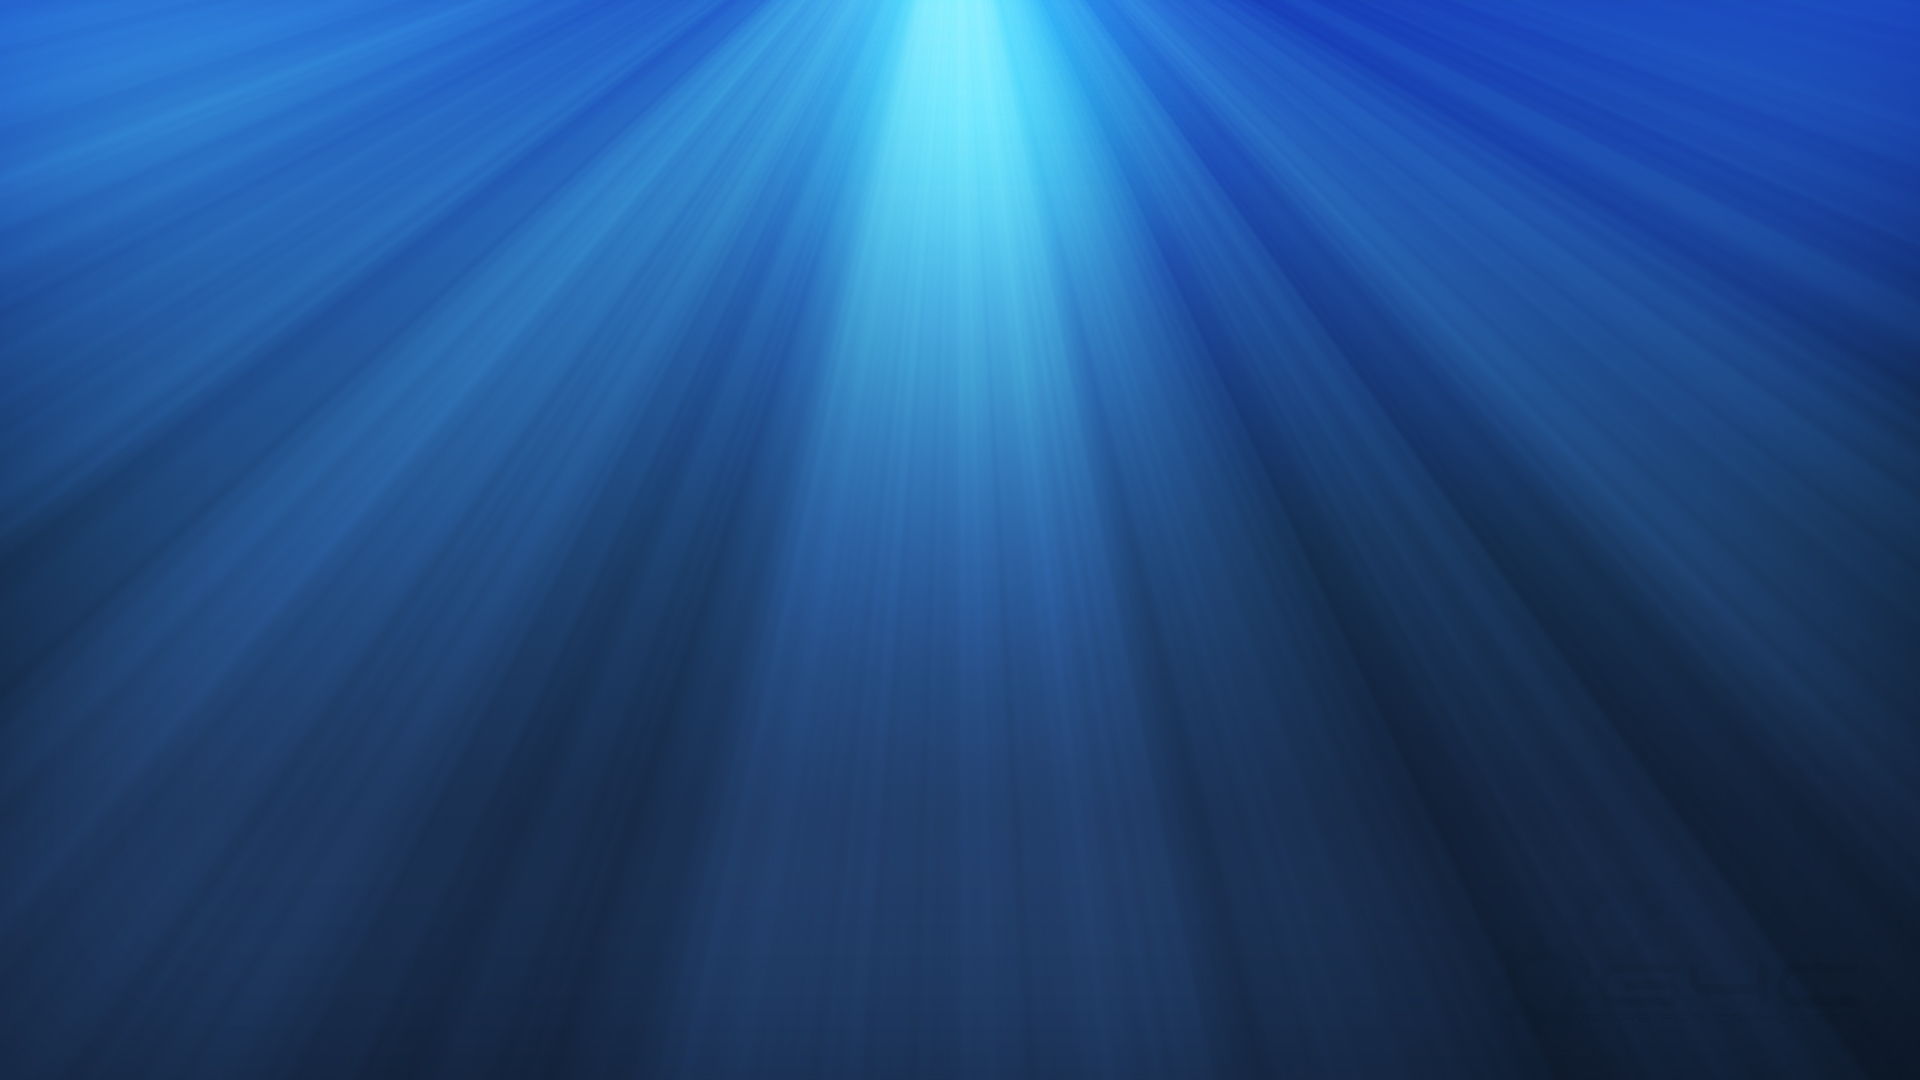 41 High Definition Blue Wallpapers For Download 1920x1080